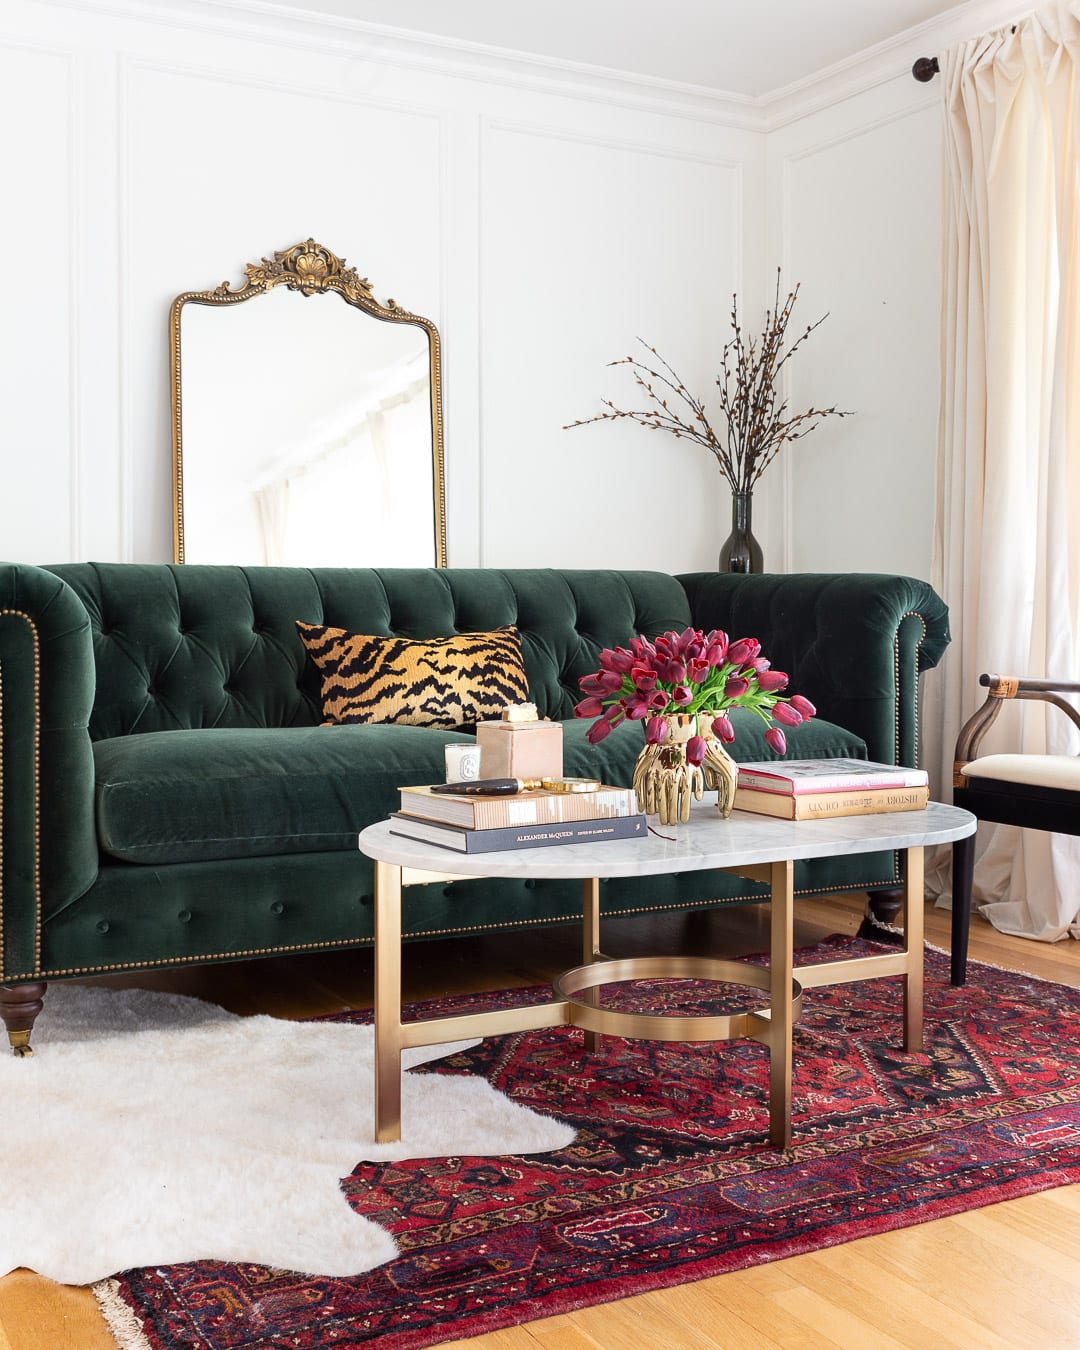 living-room-green-chesterfield